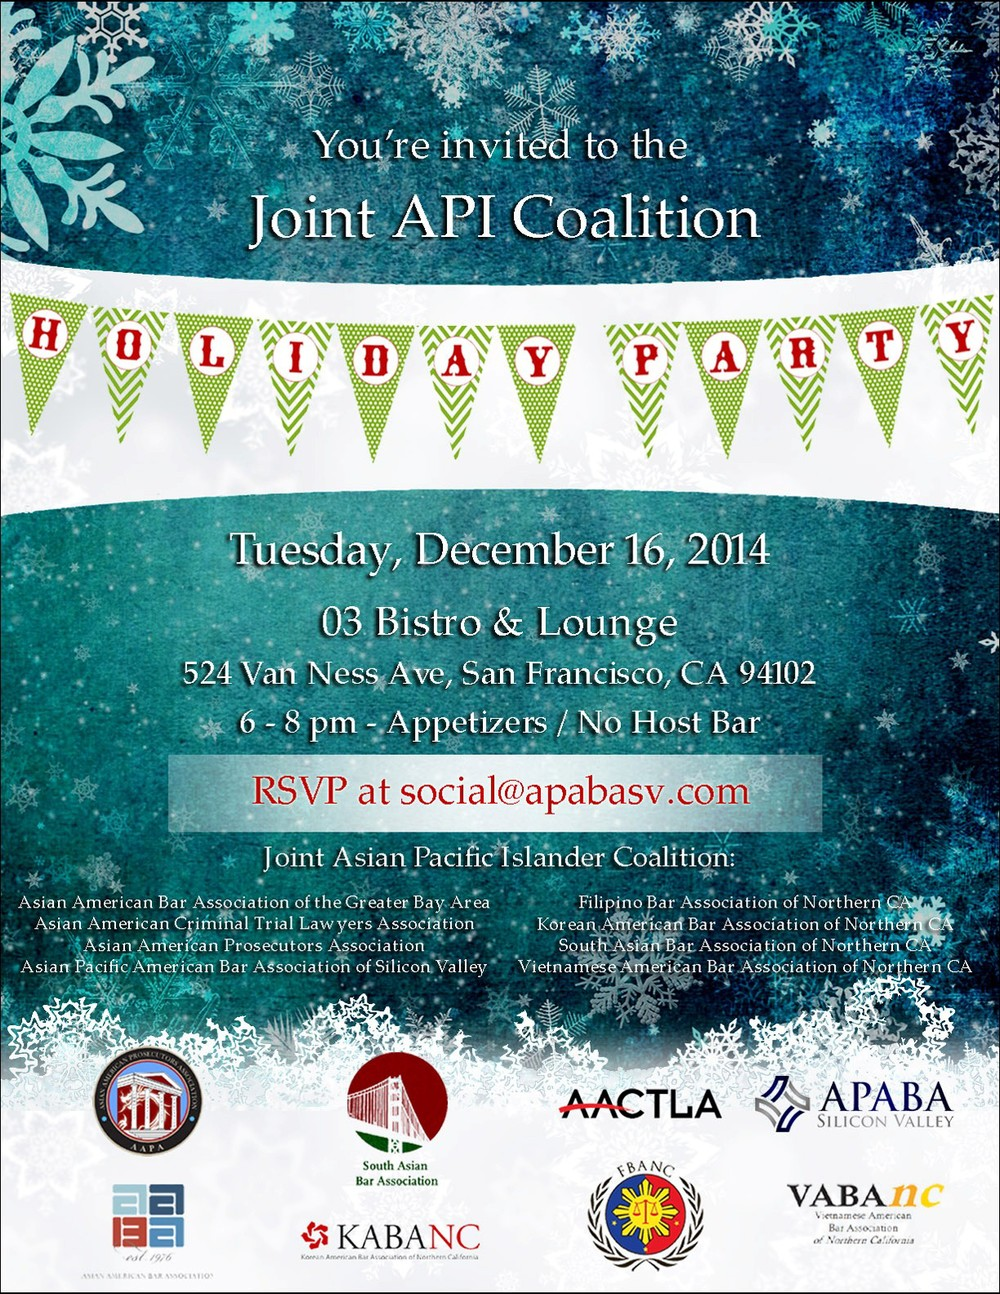 Joint API Coalition - Holiday Party.jpg